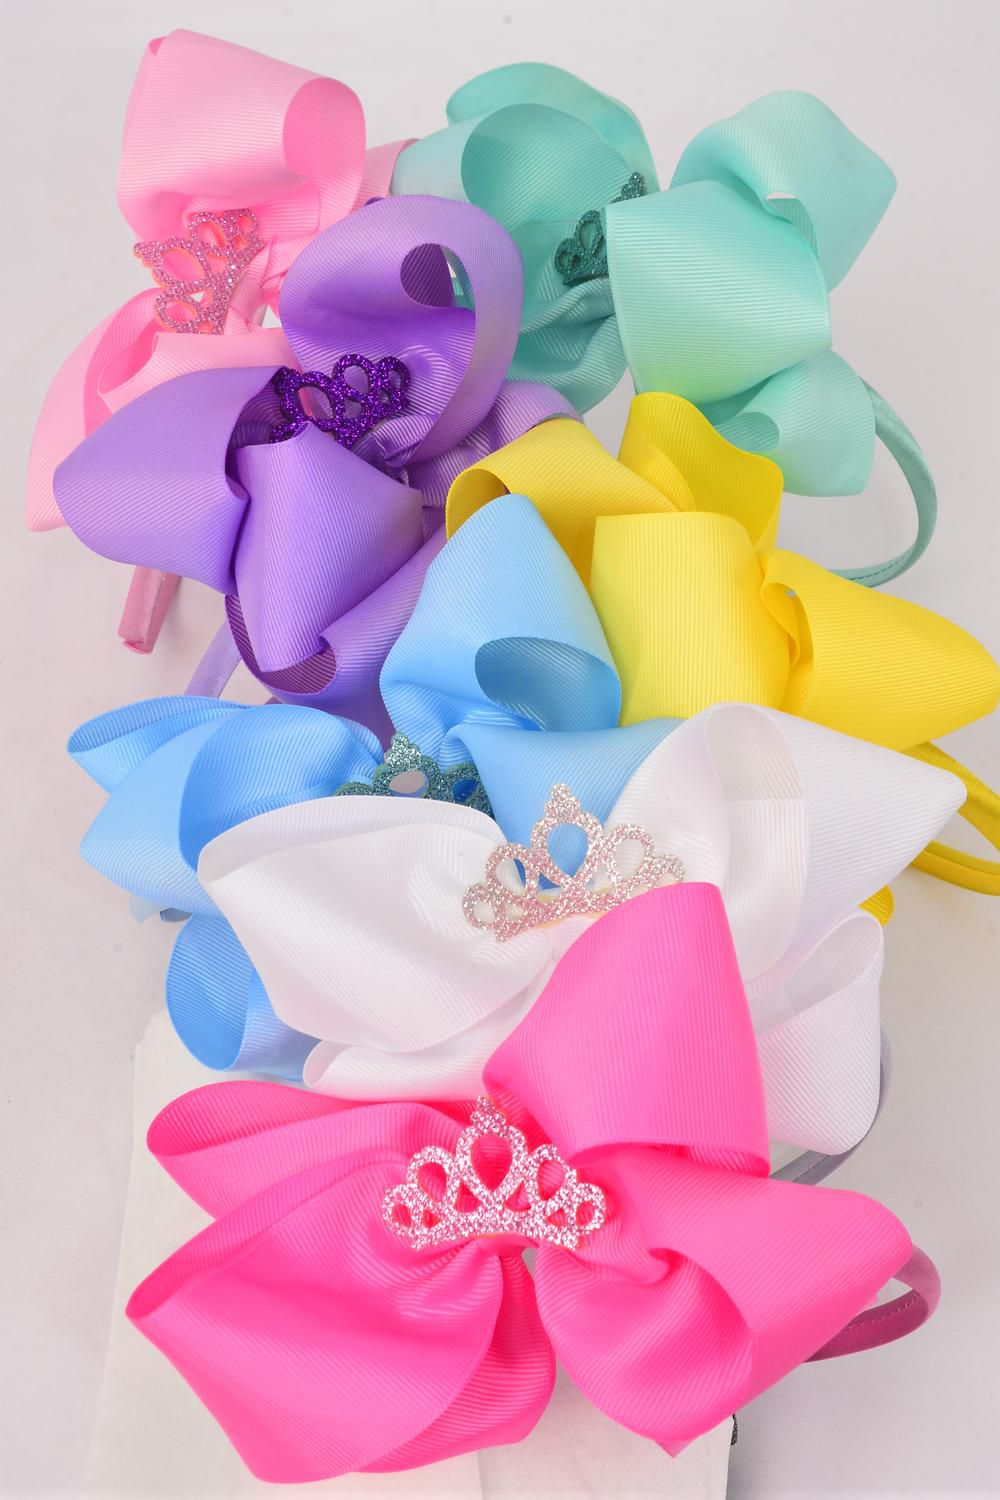 "Headband Horseshoe Jumbo Tiara Pearl Double Layered Grosgrain Bow-tie Pastel/DZ **Pastel** Bow Size-6""x 6"" Wide,2 White,2 Pink,2 Yellow,2 Lavender,2 Blue,1 Hot Pink,1 Mint Green,7 Color Mix,Display Card & UPC Code,Clear Box"